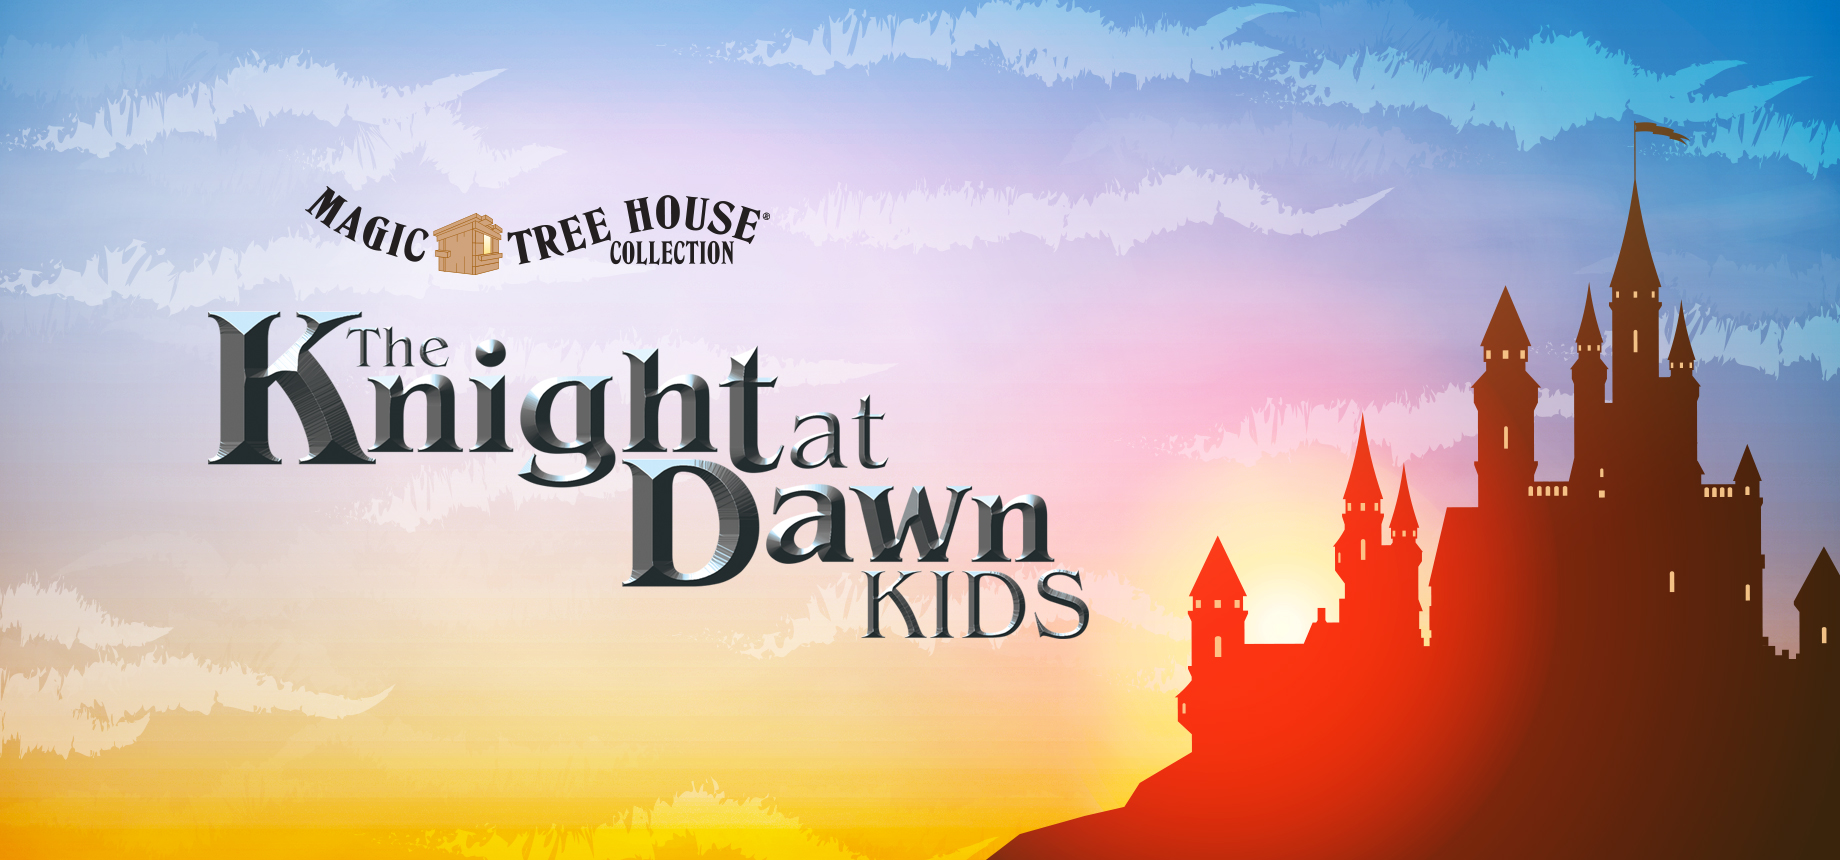 Magic Tree House The Knight At Dawn Kids Music Theatre